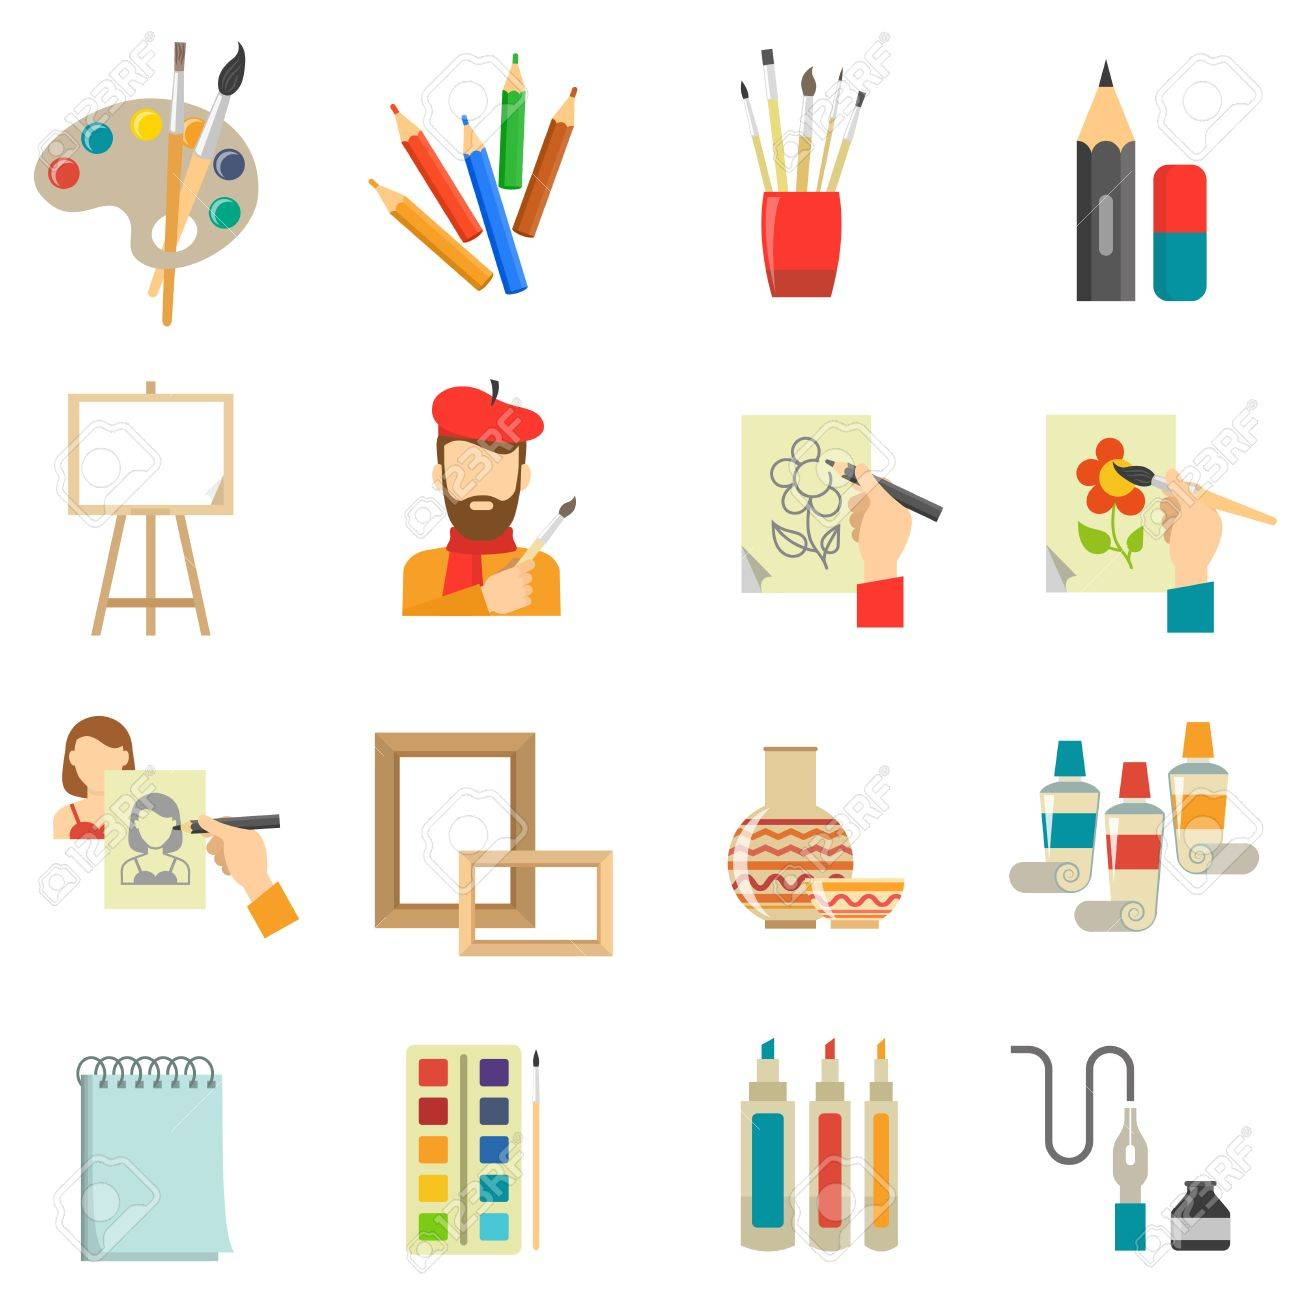 Art icons set with artist tools and paint isolated vector illustration.